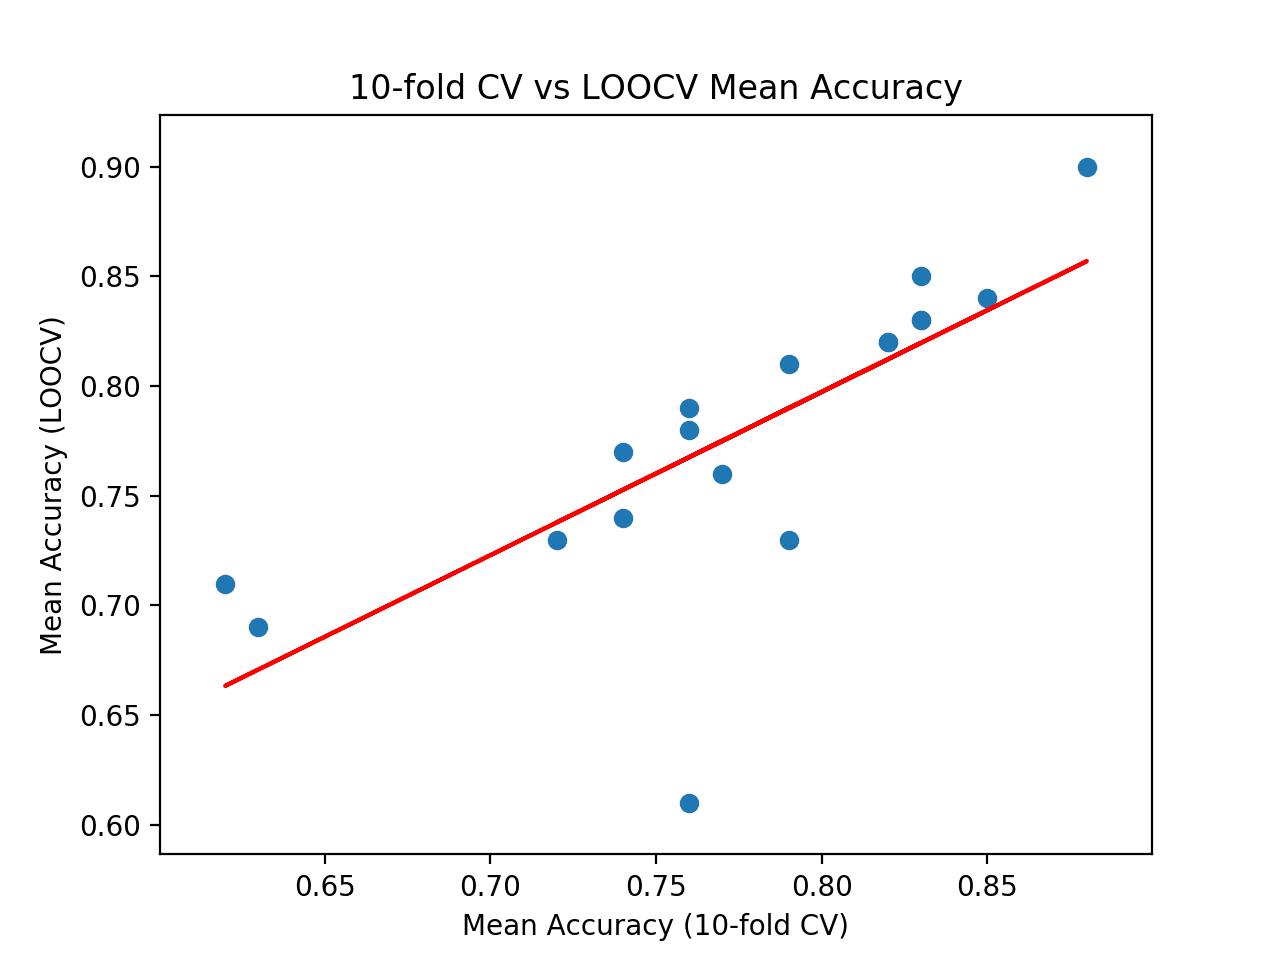 Scatter Plot of Cross-Validation vs. Ideal Test Mean Accuracy With Line of Best Fit